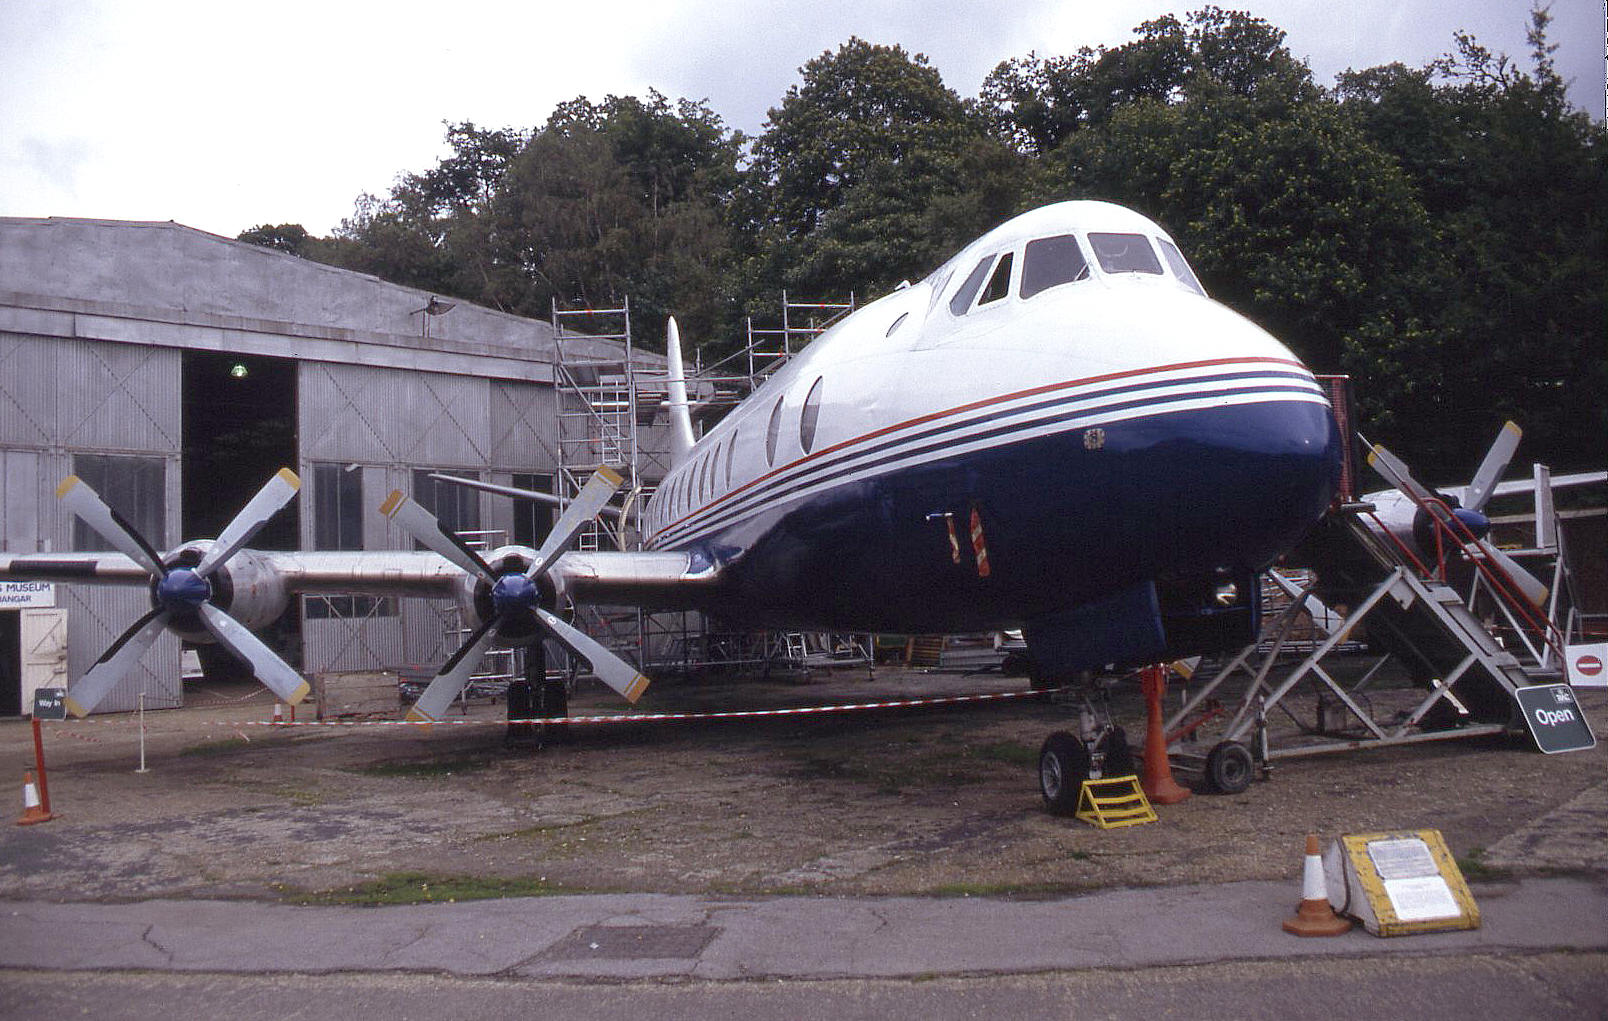 Vickers 803 Viscount (G-APIM) in October 1993